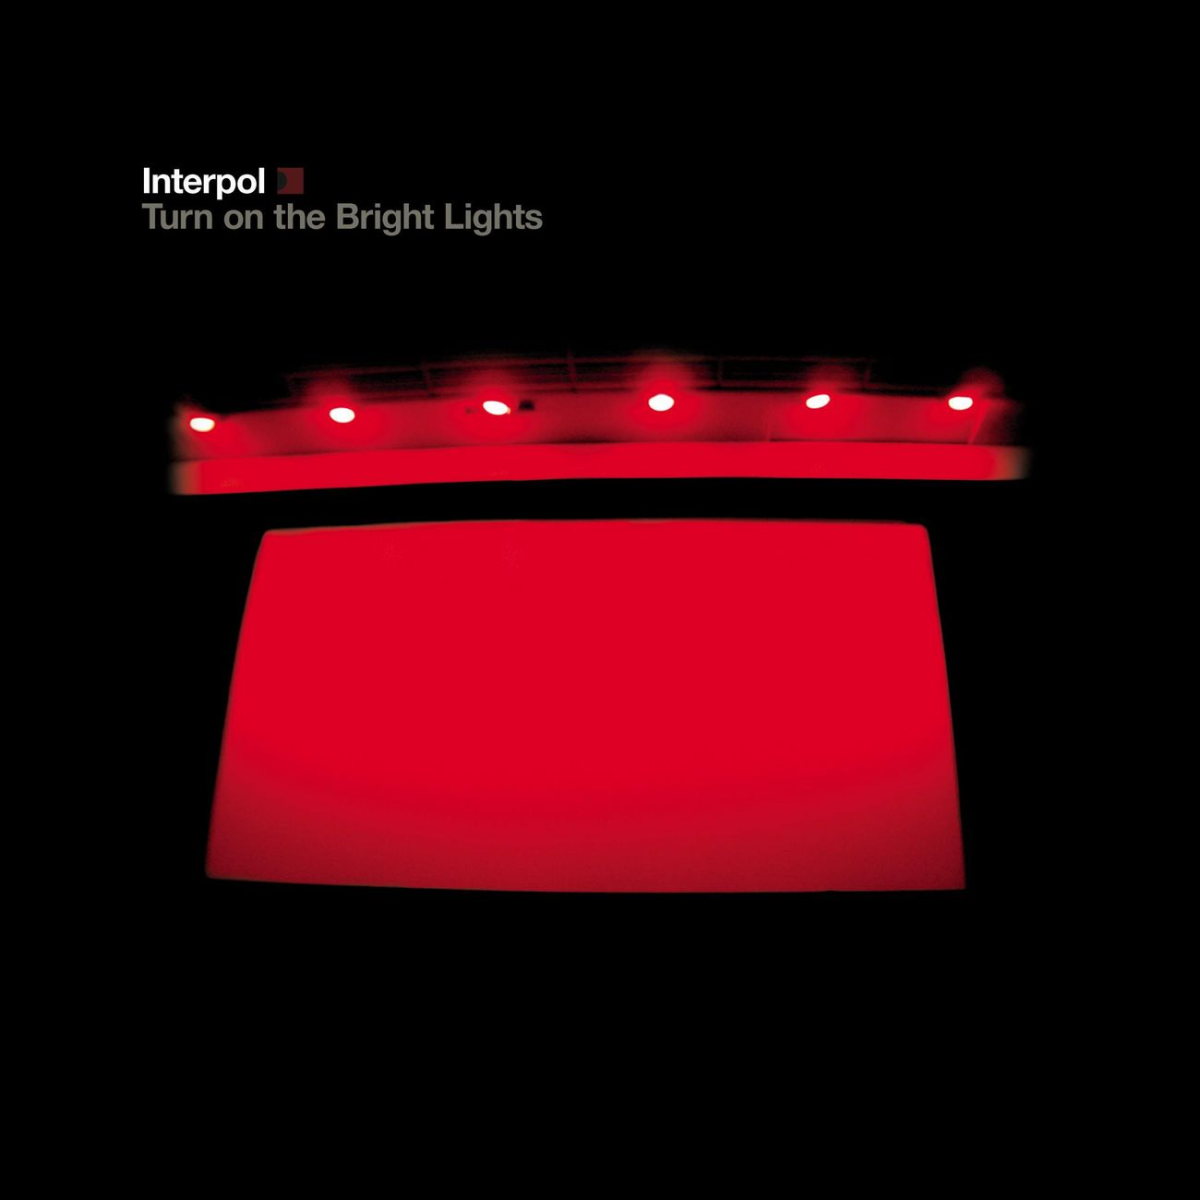 Interpol announce special Turn on the Bright Lights performances